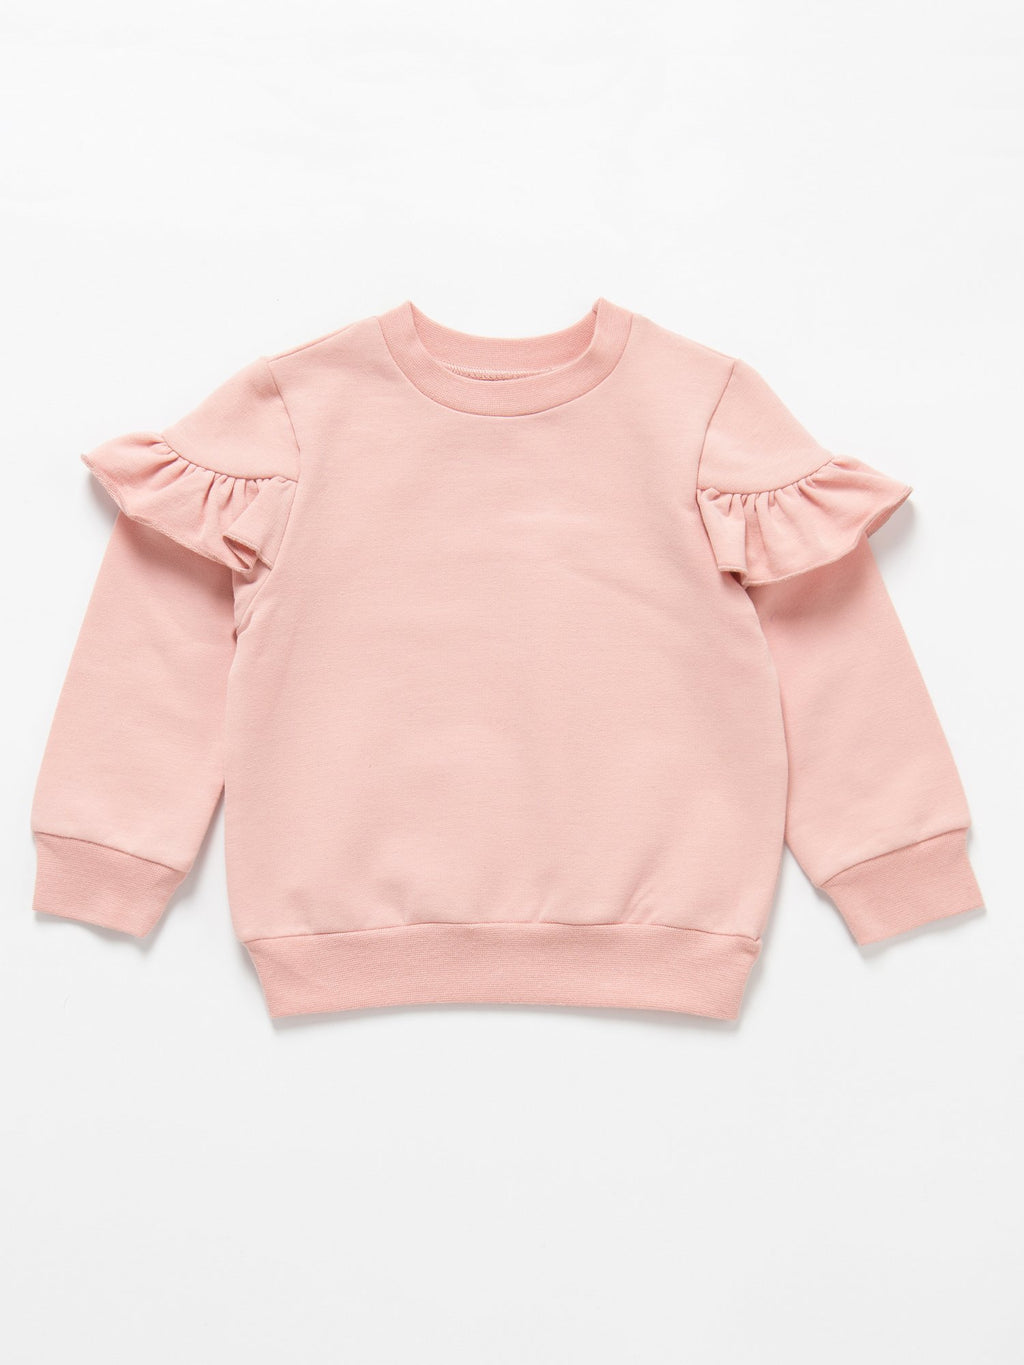 Girls French Terry Pink Long Sleeve Top - Stylemykid.com